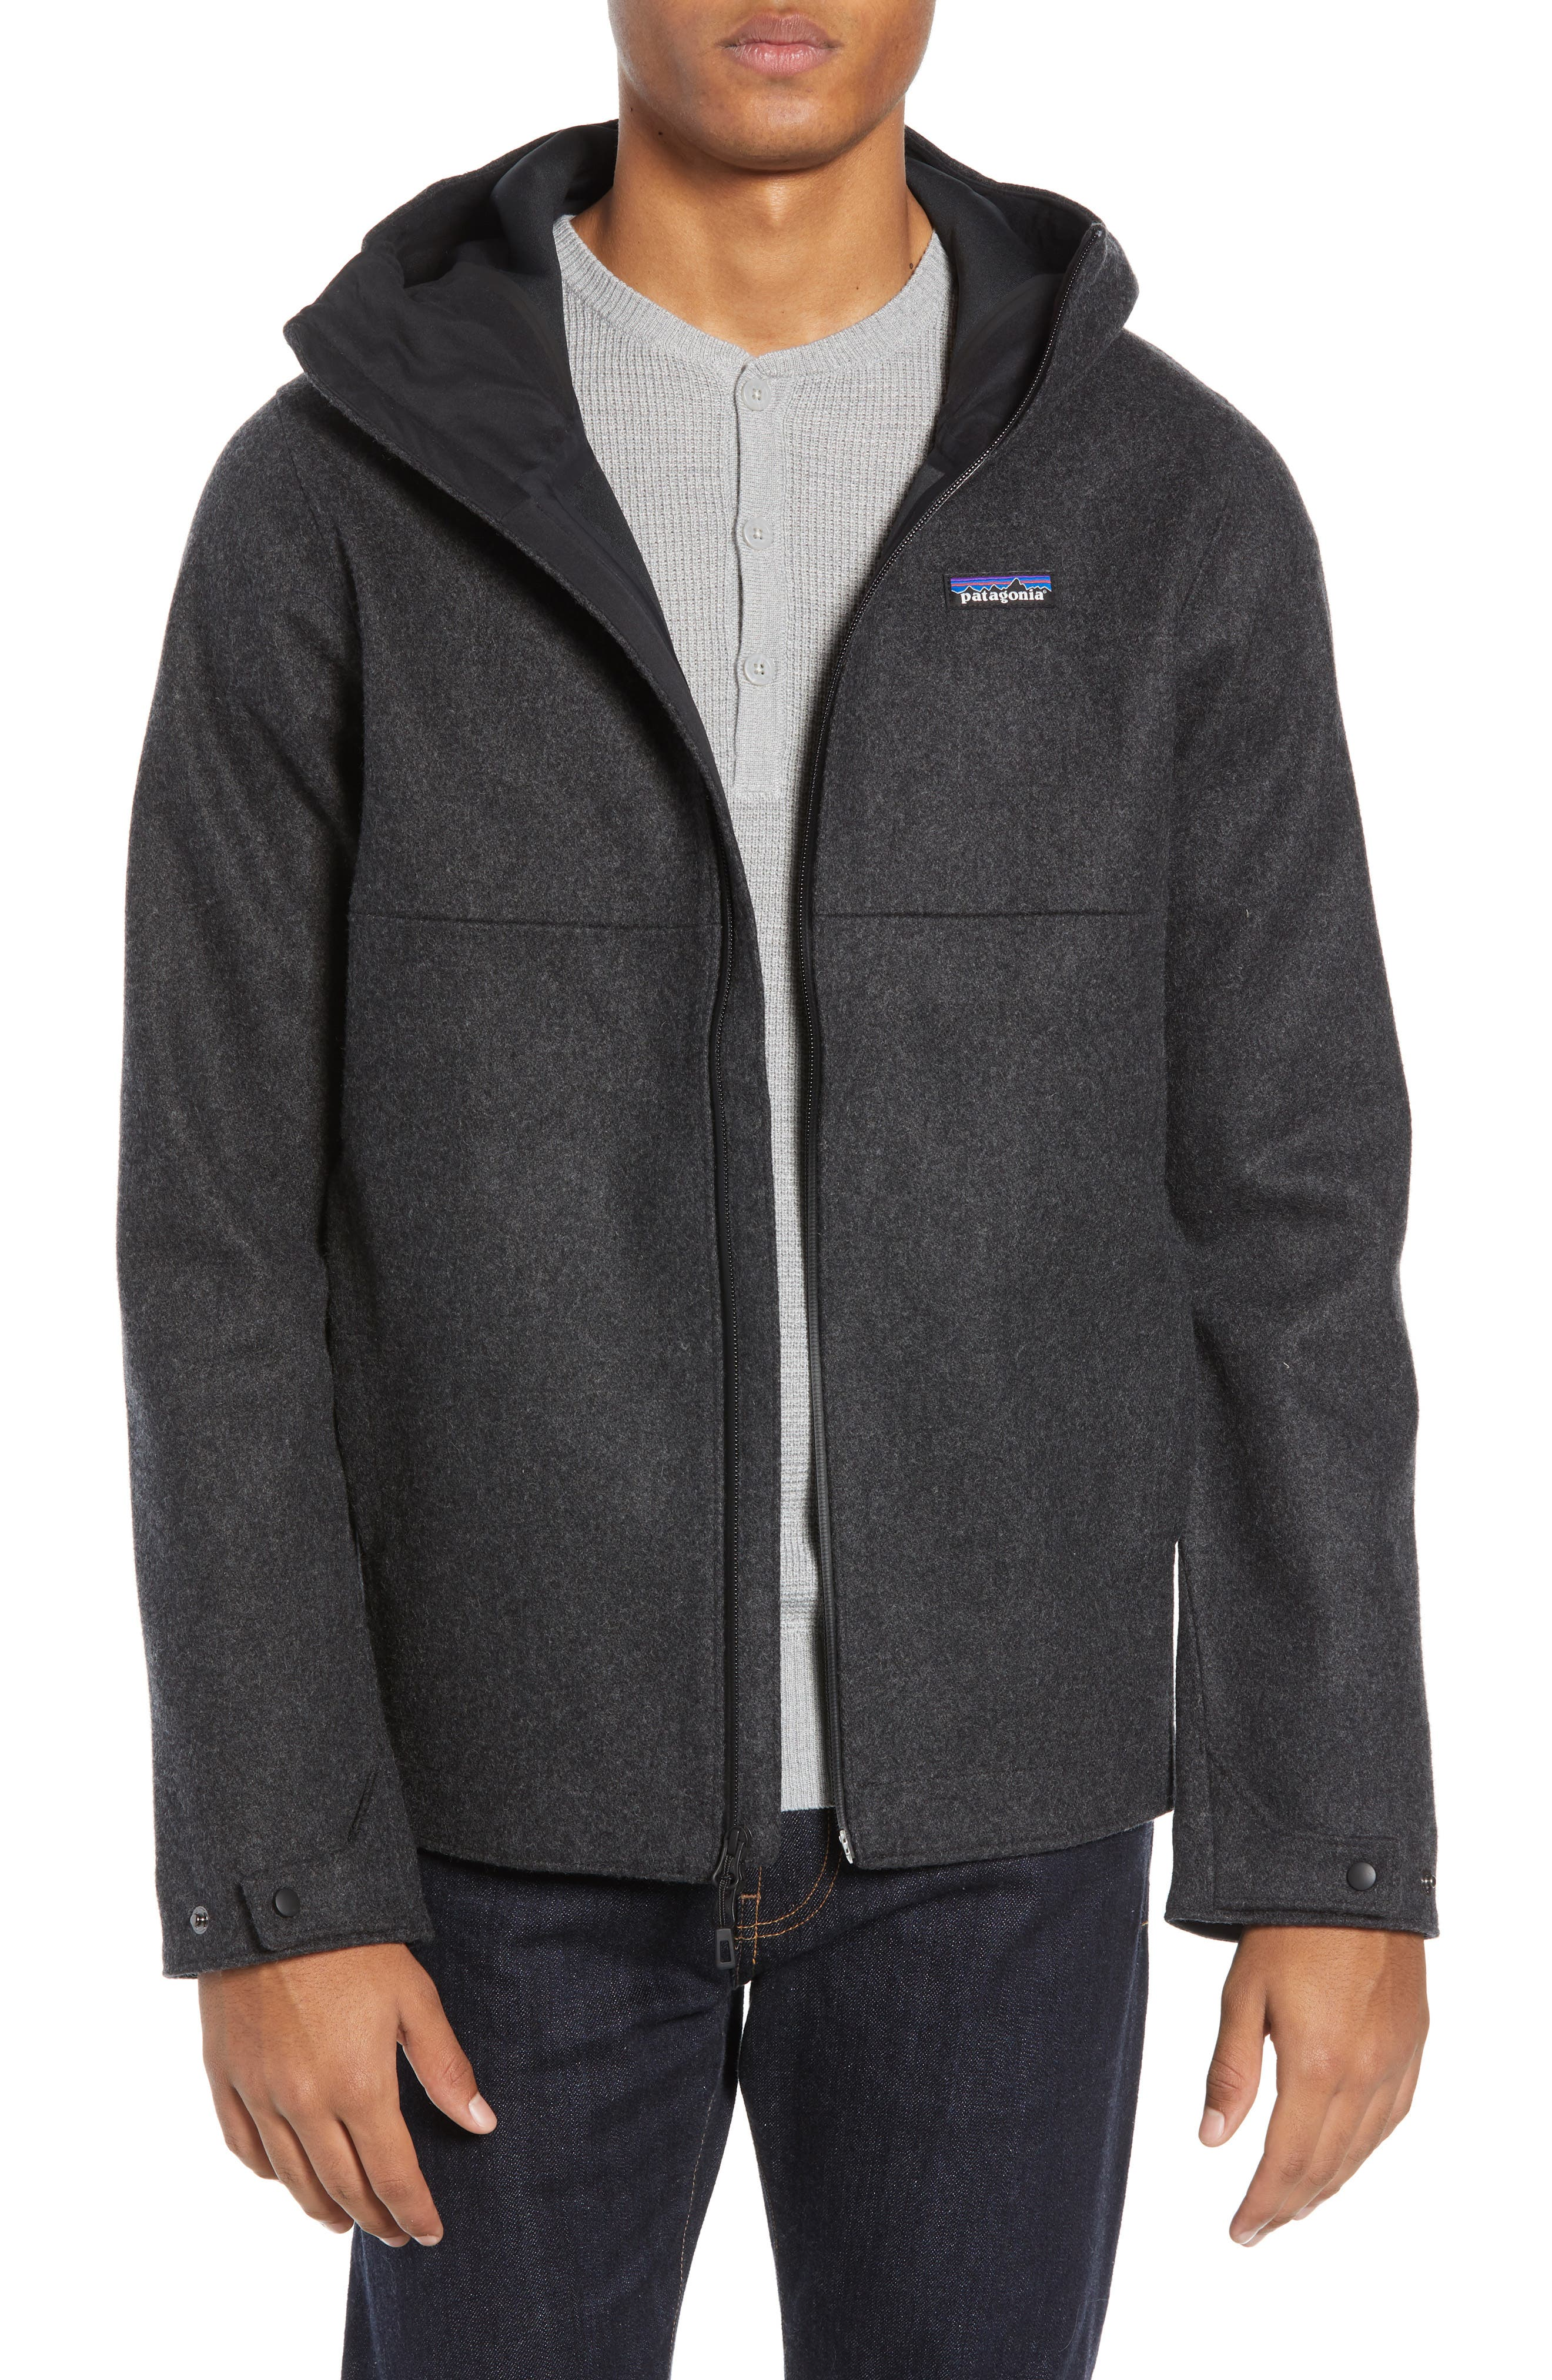 Woolyester Hooded Jacket,                         Main,                         color, FORGE GREY